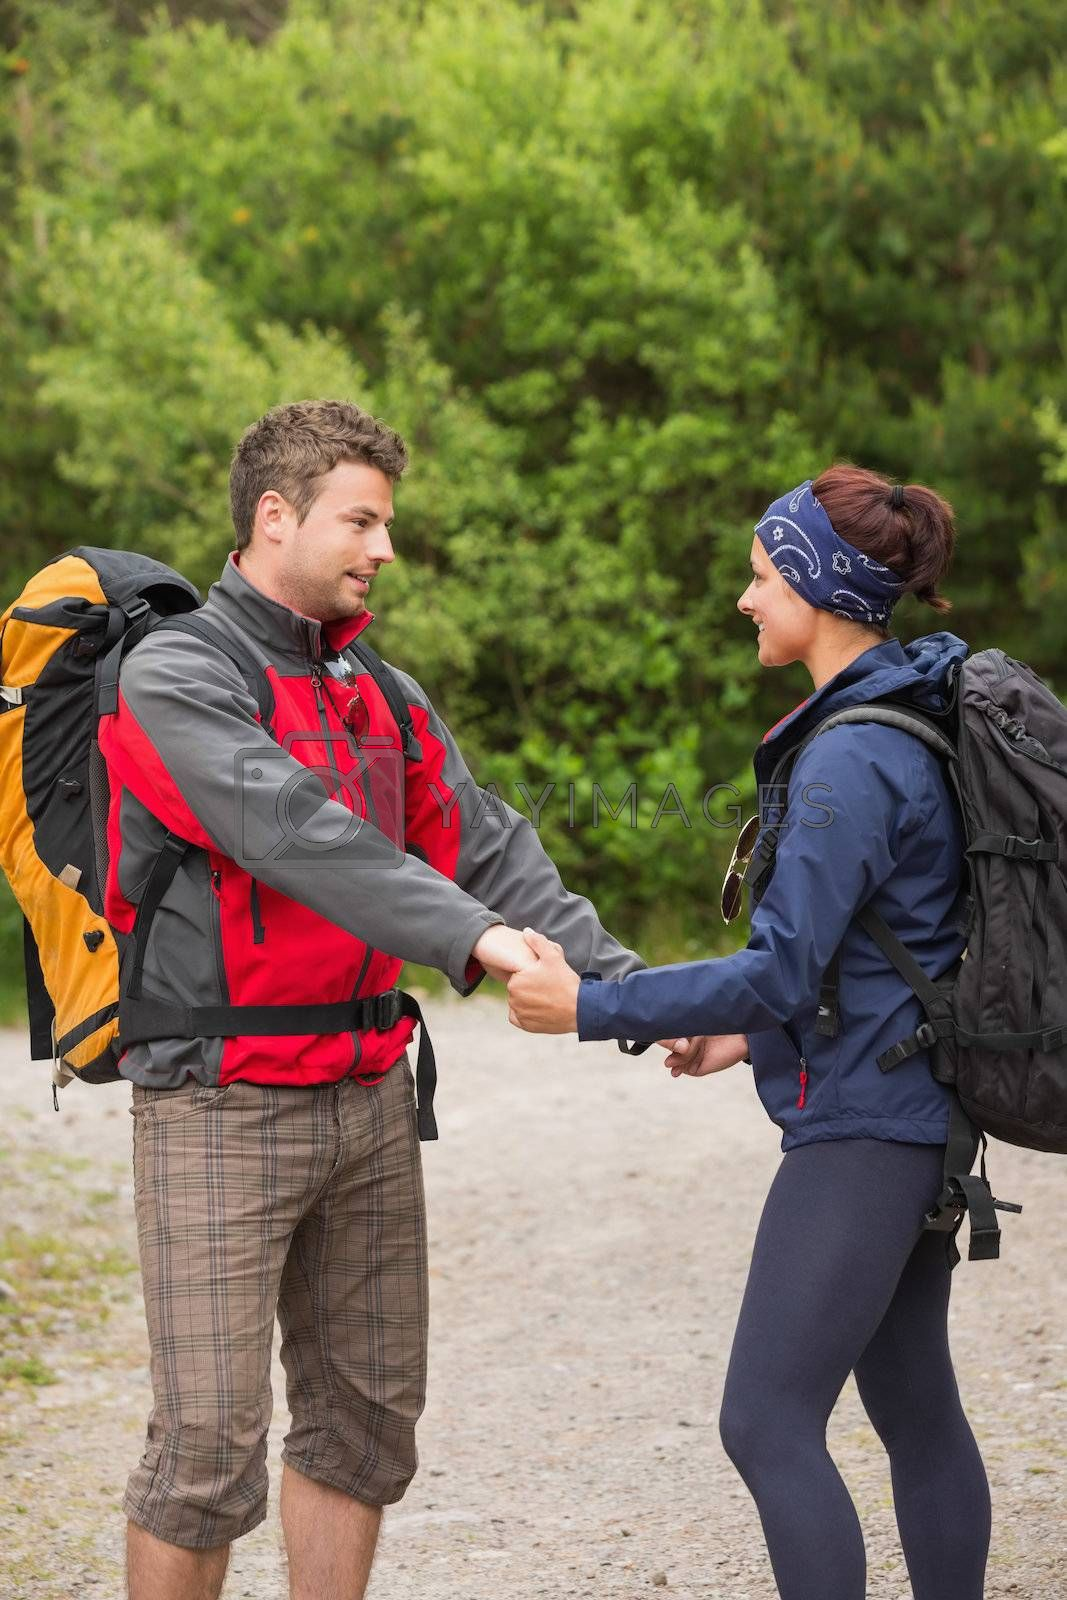 Cute couple going on a hike together holding hands by Wavebreakmedia